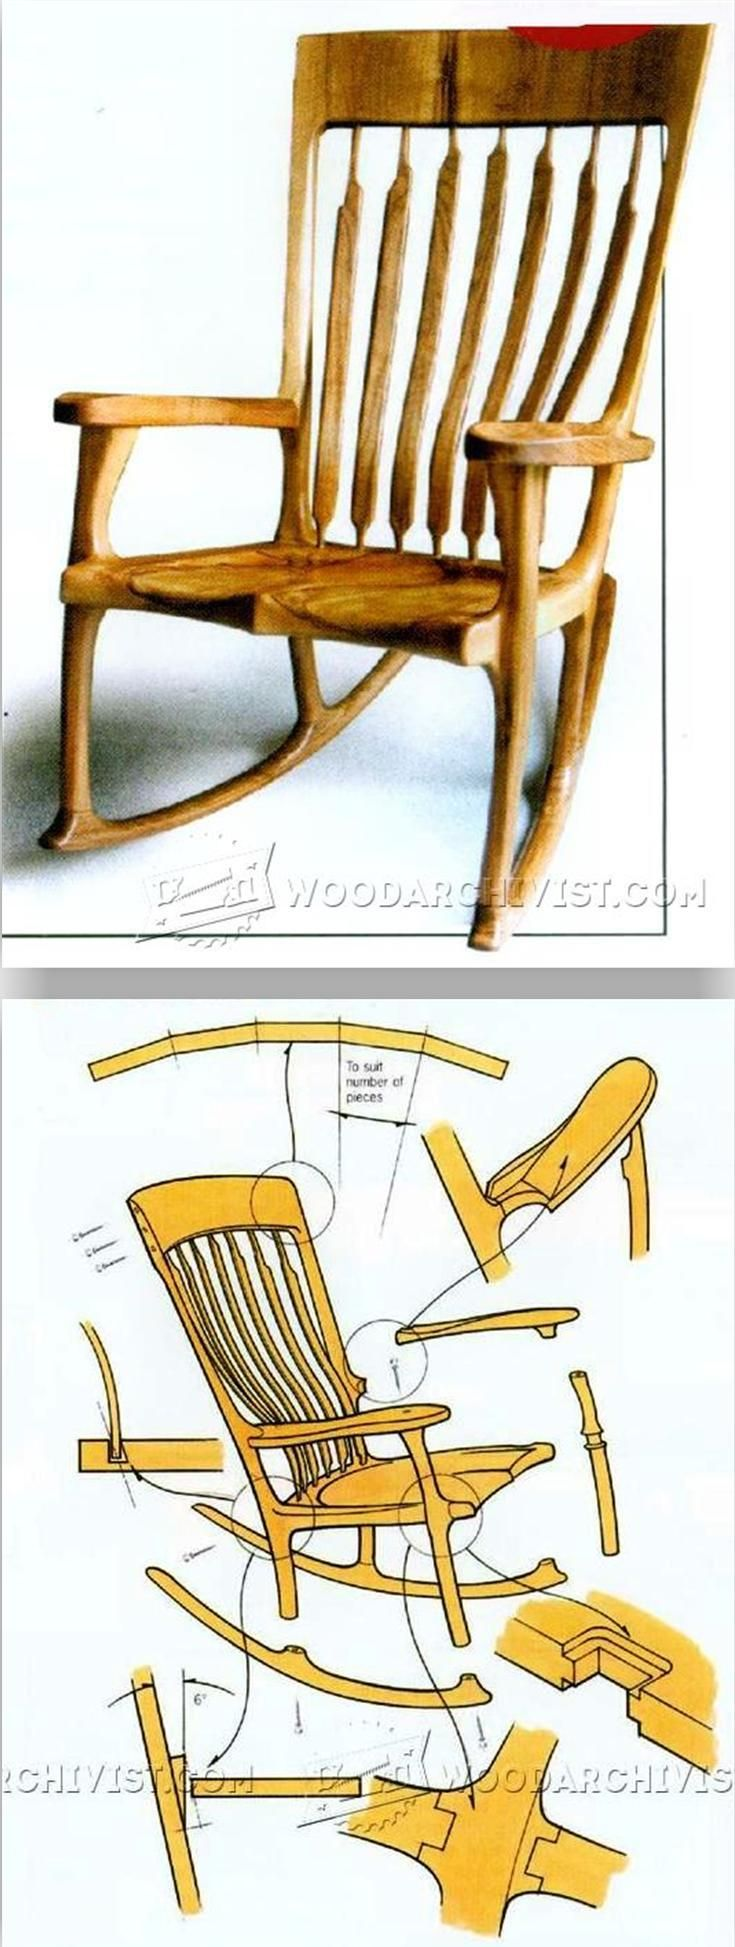 Classic Rocking Chair Plans - Furniture Plans and Projects | WoodArchivist.com